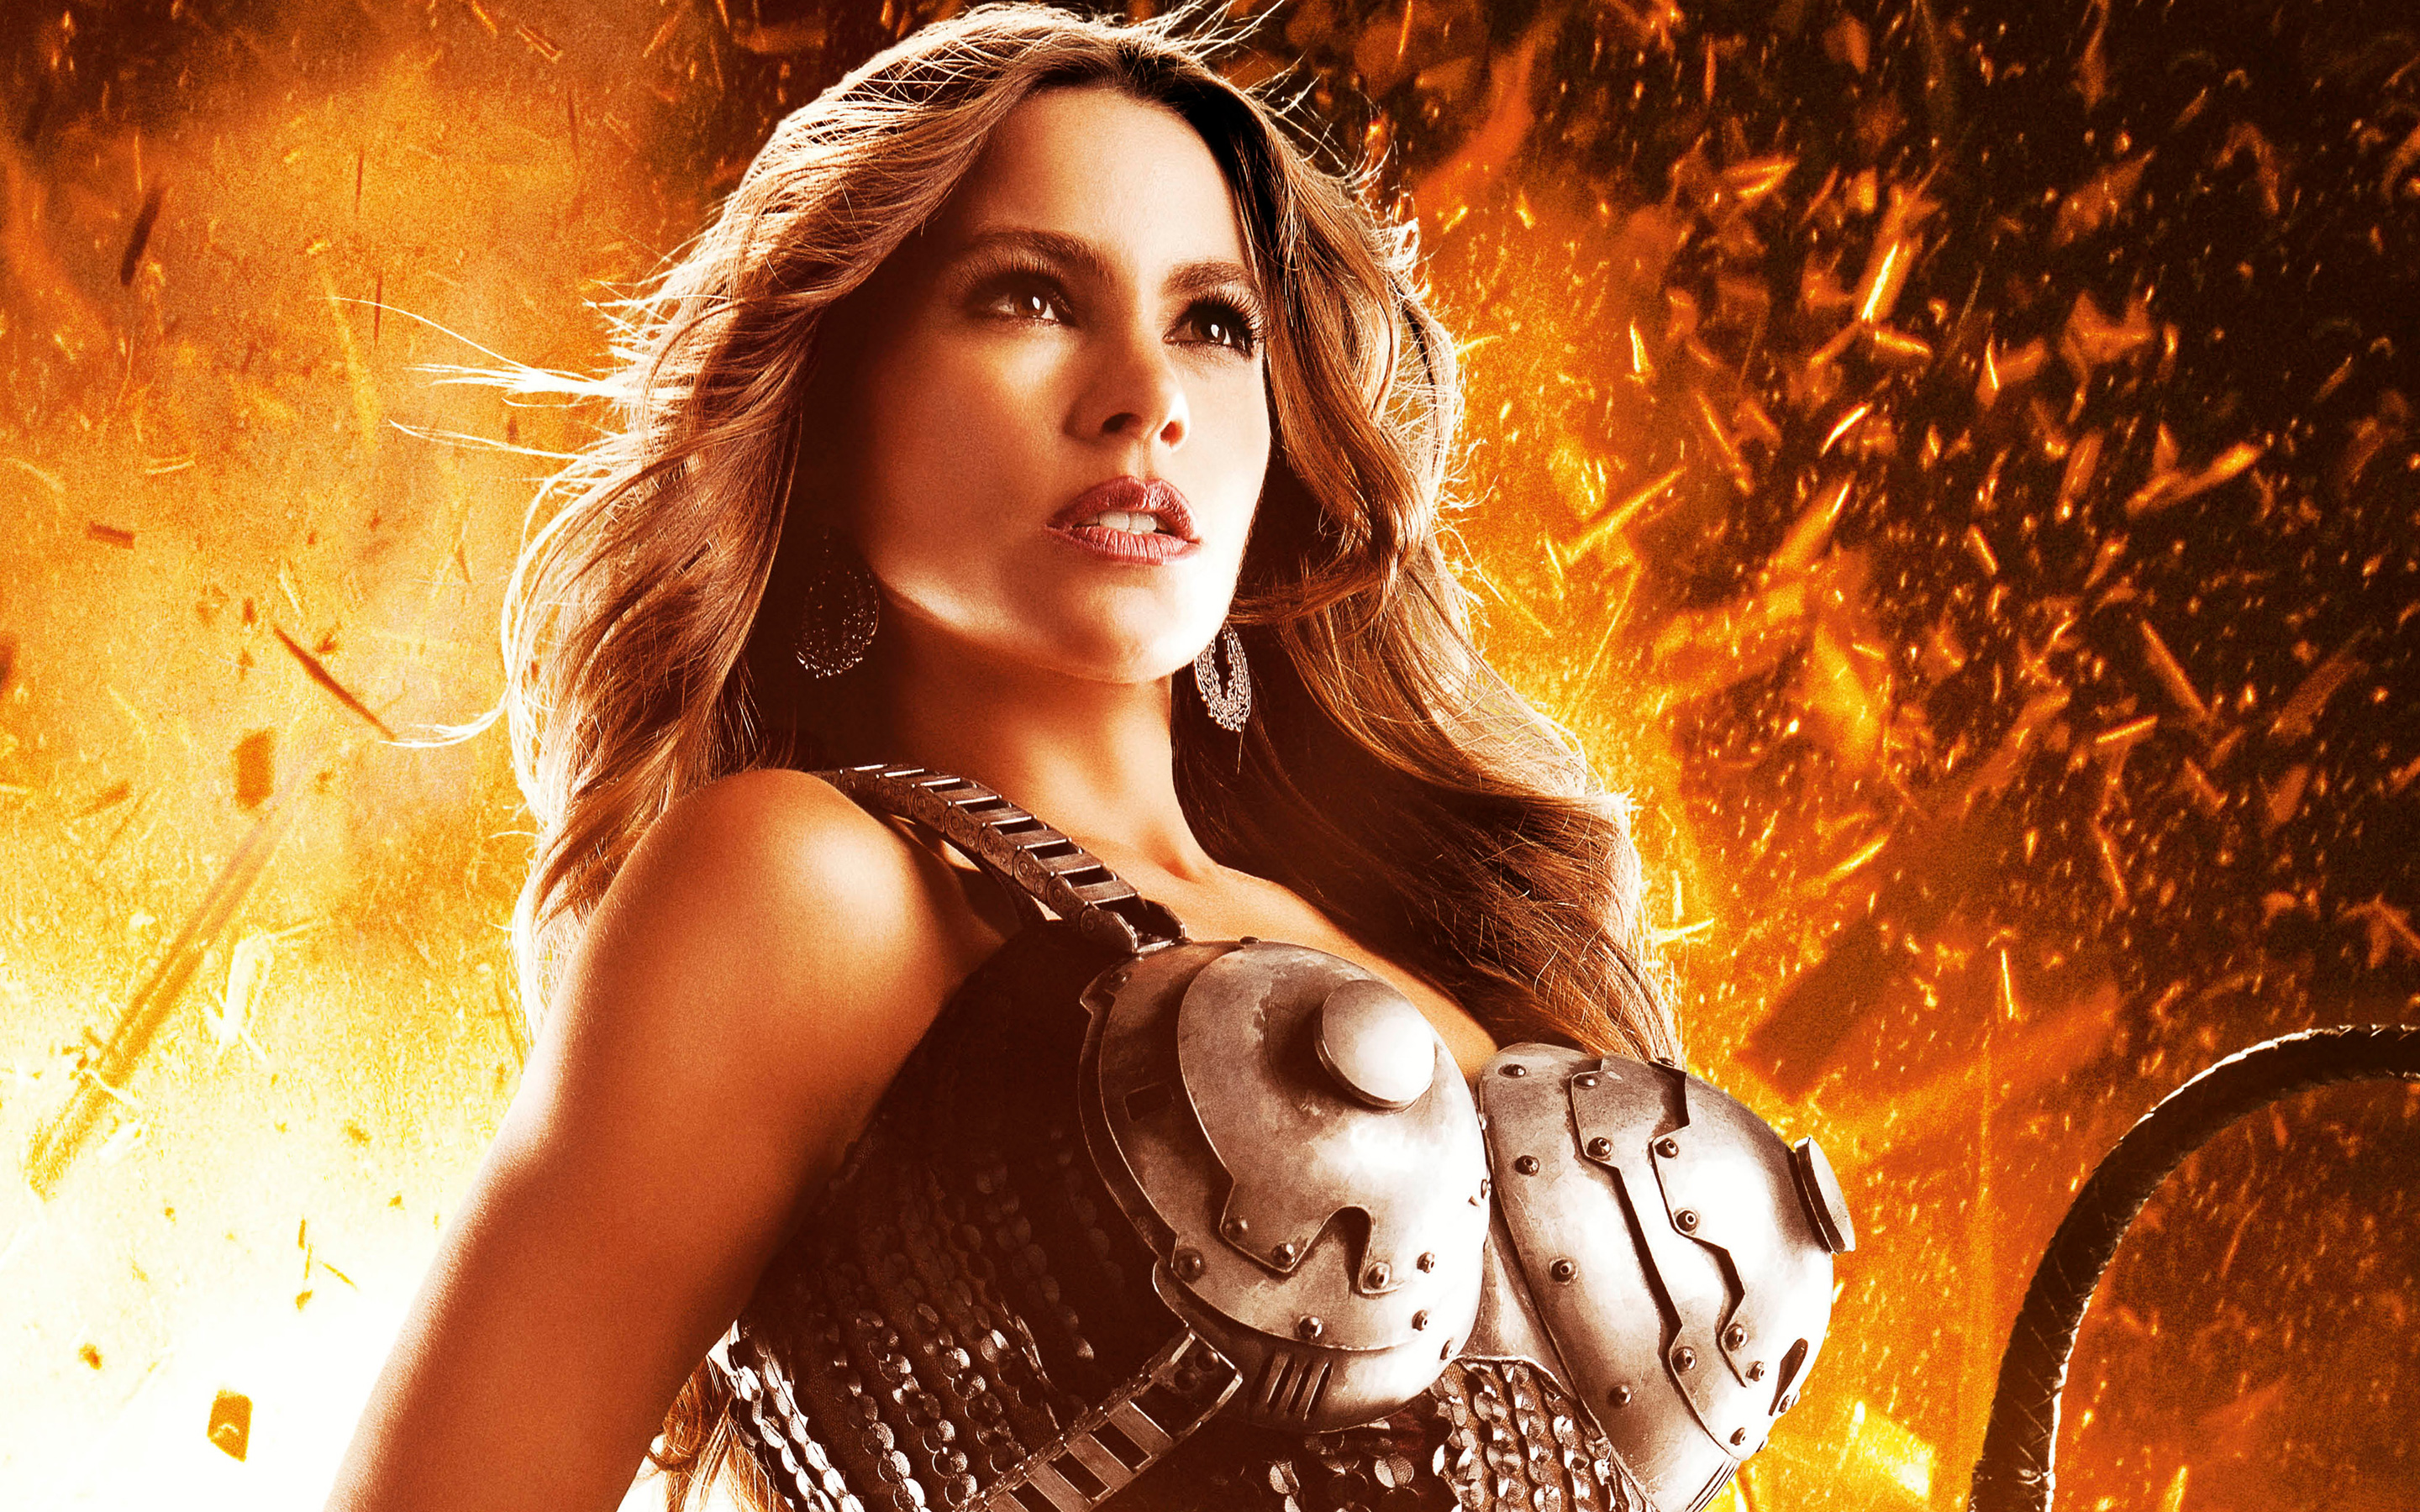 Machete Kills Sofia Vergara 3111.26 Kb